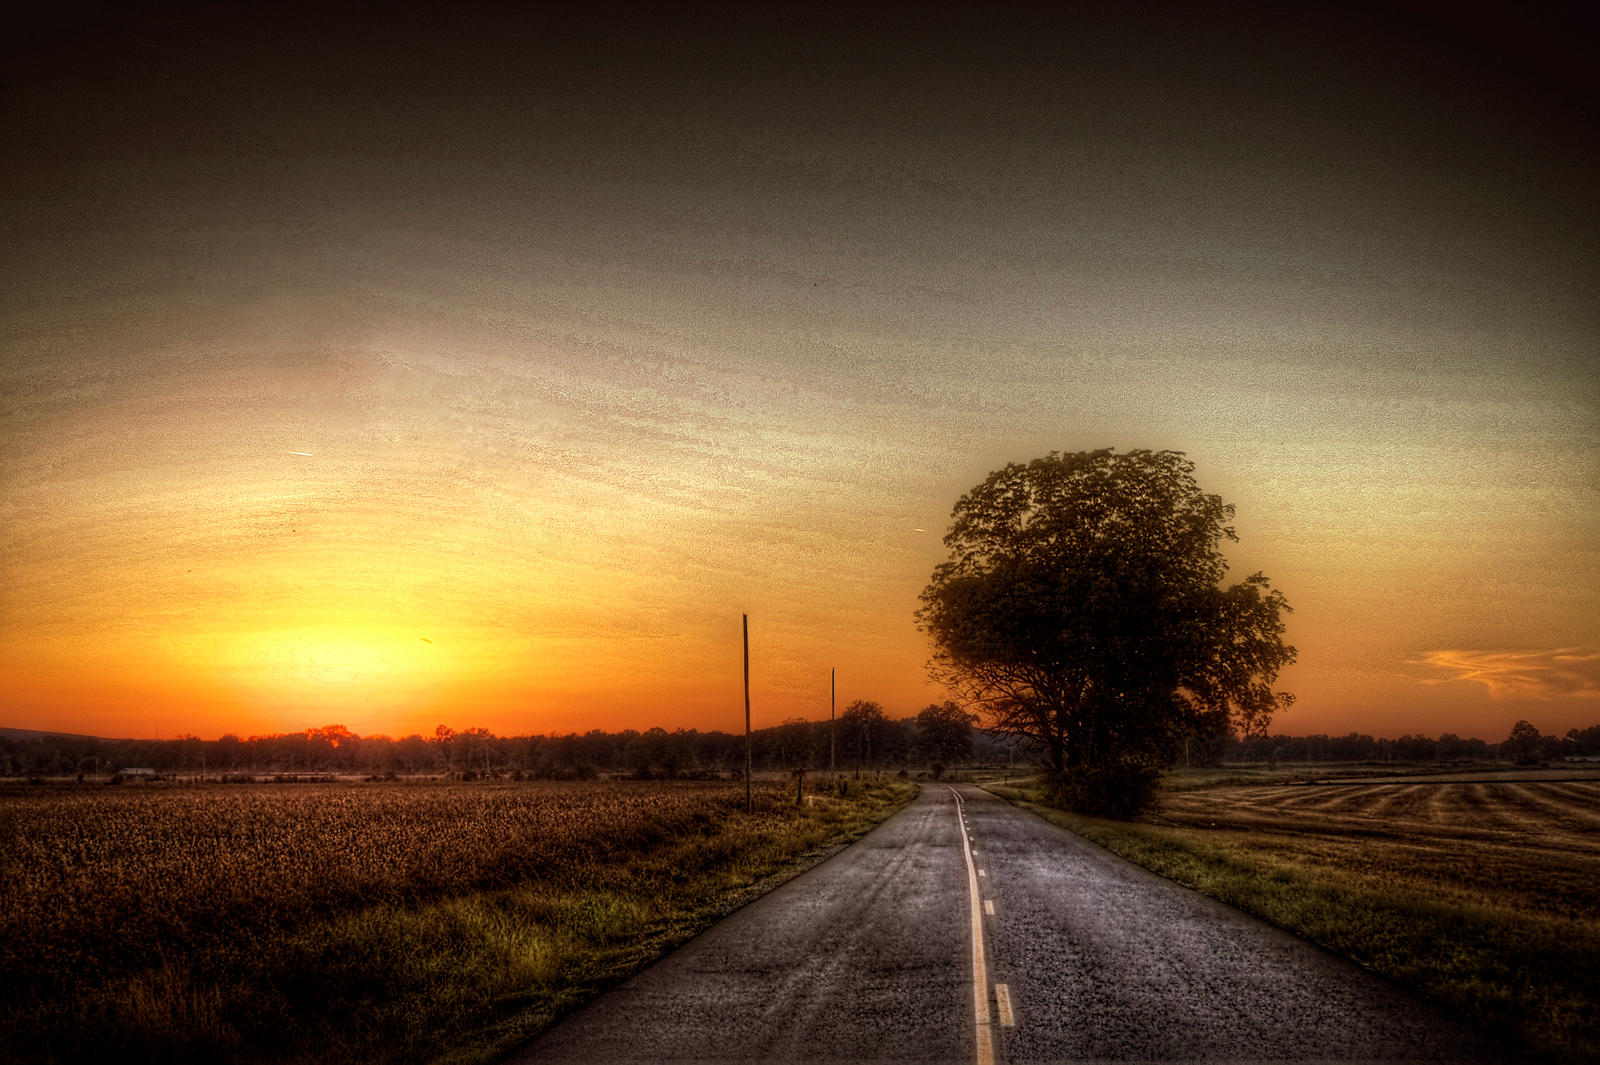 Road Sunset Wallpaper Image Gallery sunset r...